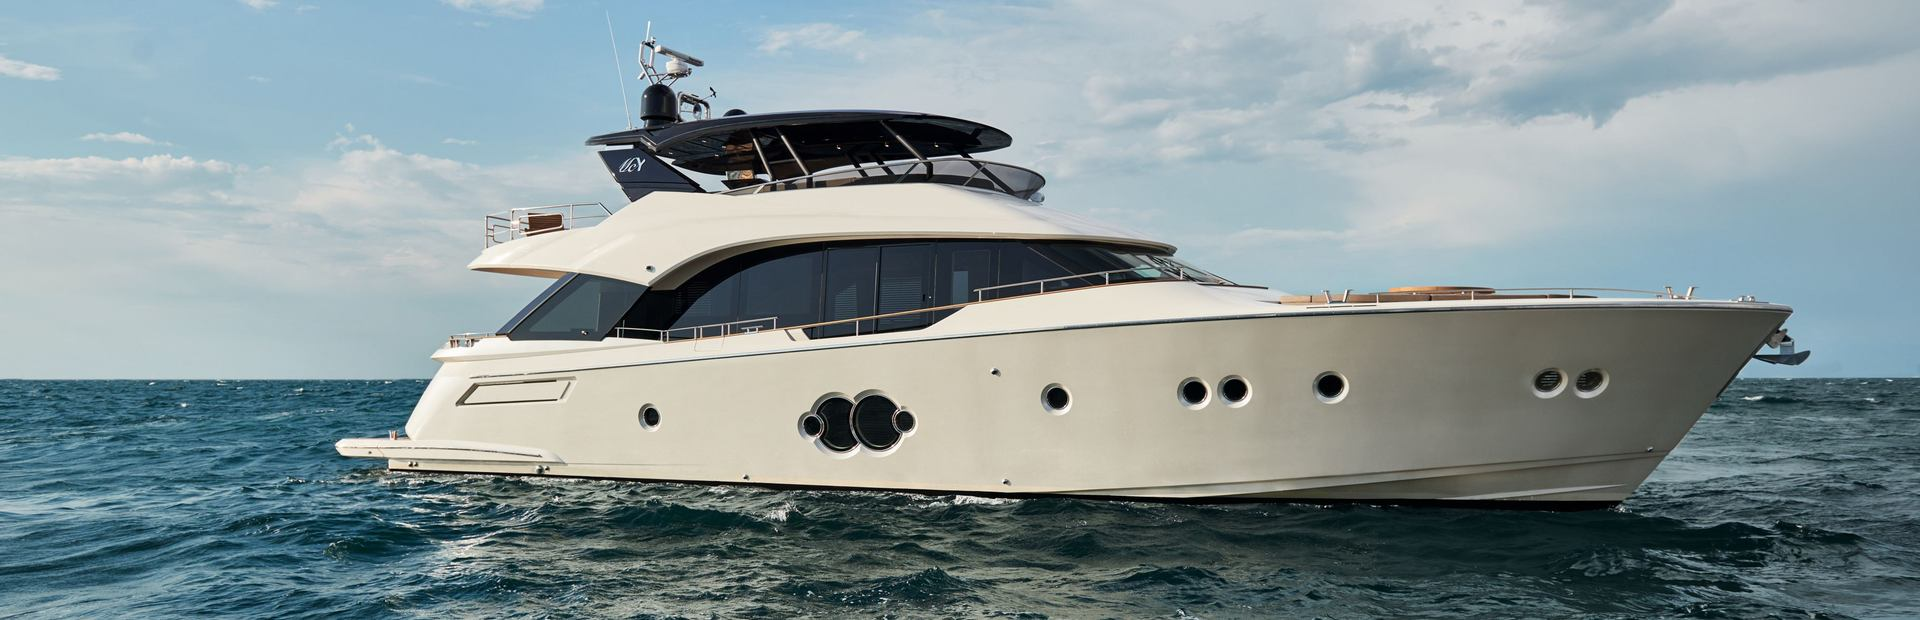 MCY 80 Yacht Charter